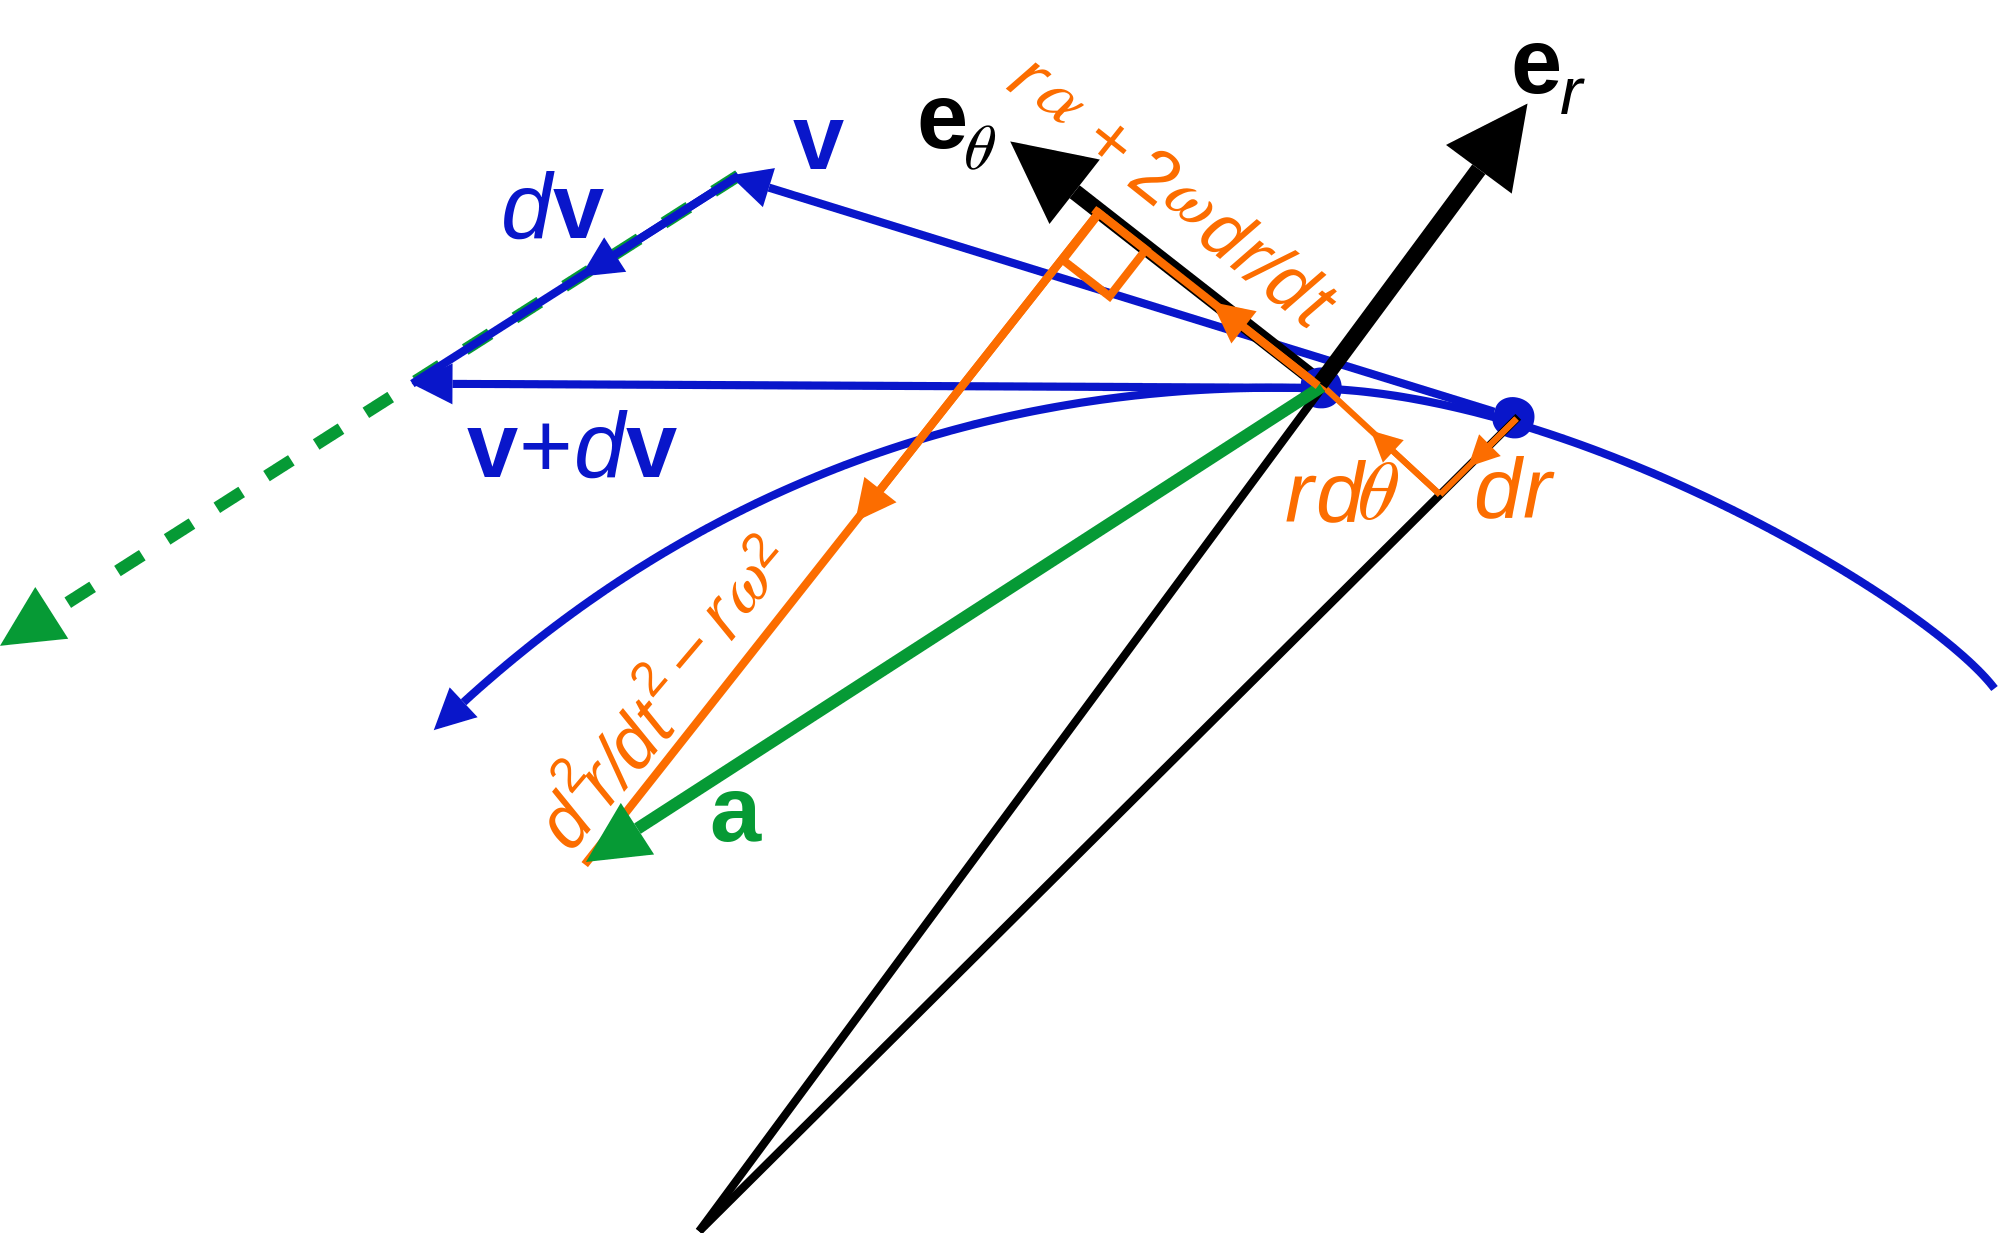 POSITION VECTOR, VELOCITY AND ACCELERATION, DERIVATIVES OF VECTOR FUNCTIONS, RECTANGULAR COMPONENTS OF VELOCITY AND ACCELERATION, MOTION RELATIVE TO A FRAME IN TRANSLATION, TANGENTIAL AND NORMAL COMPO